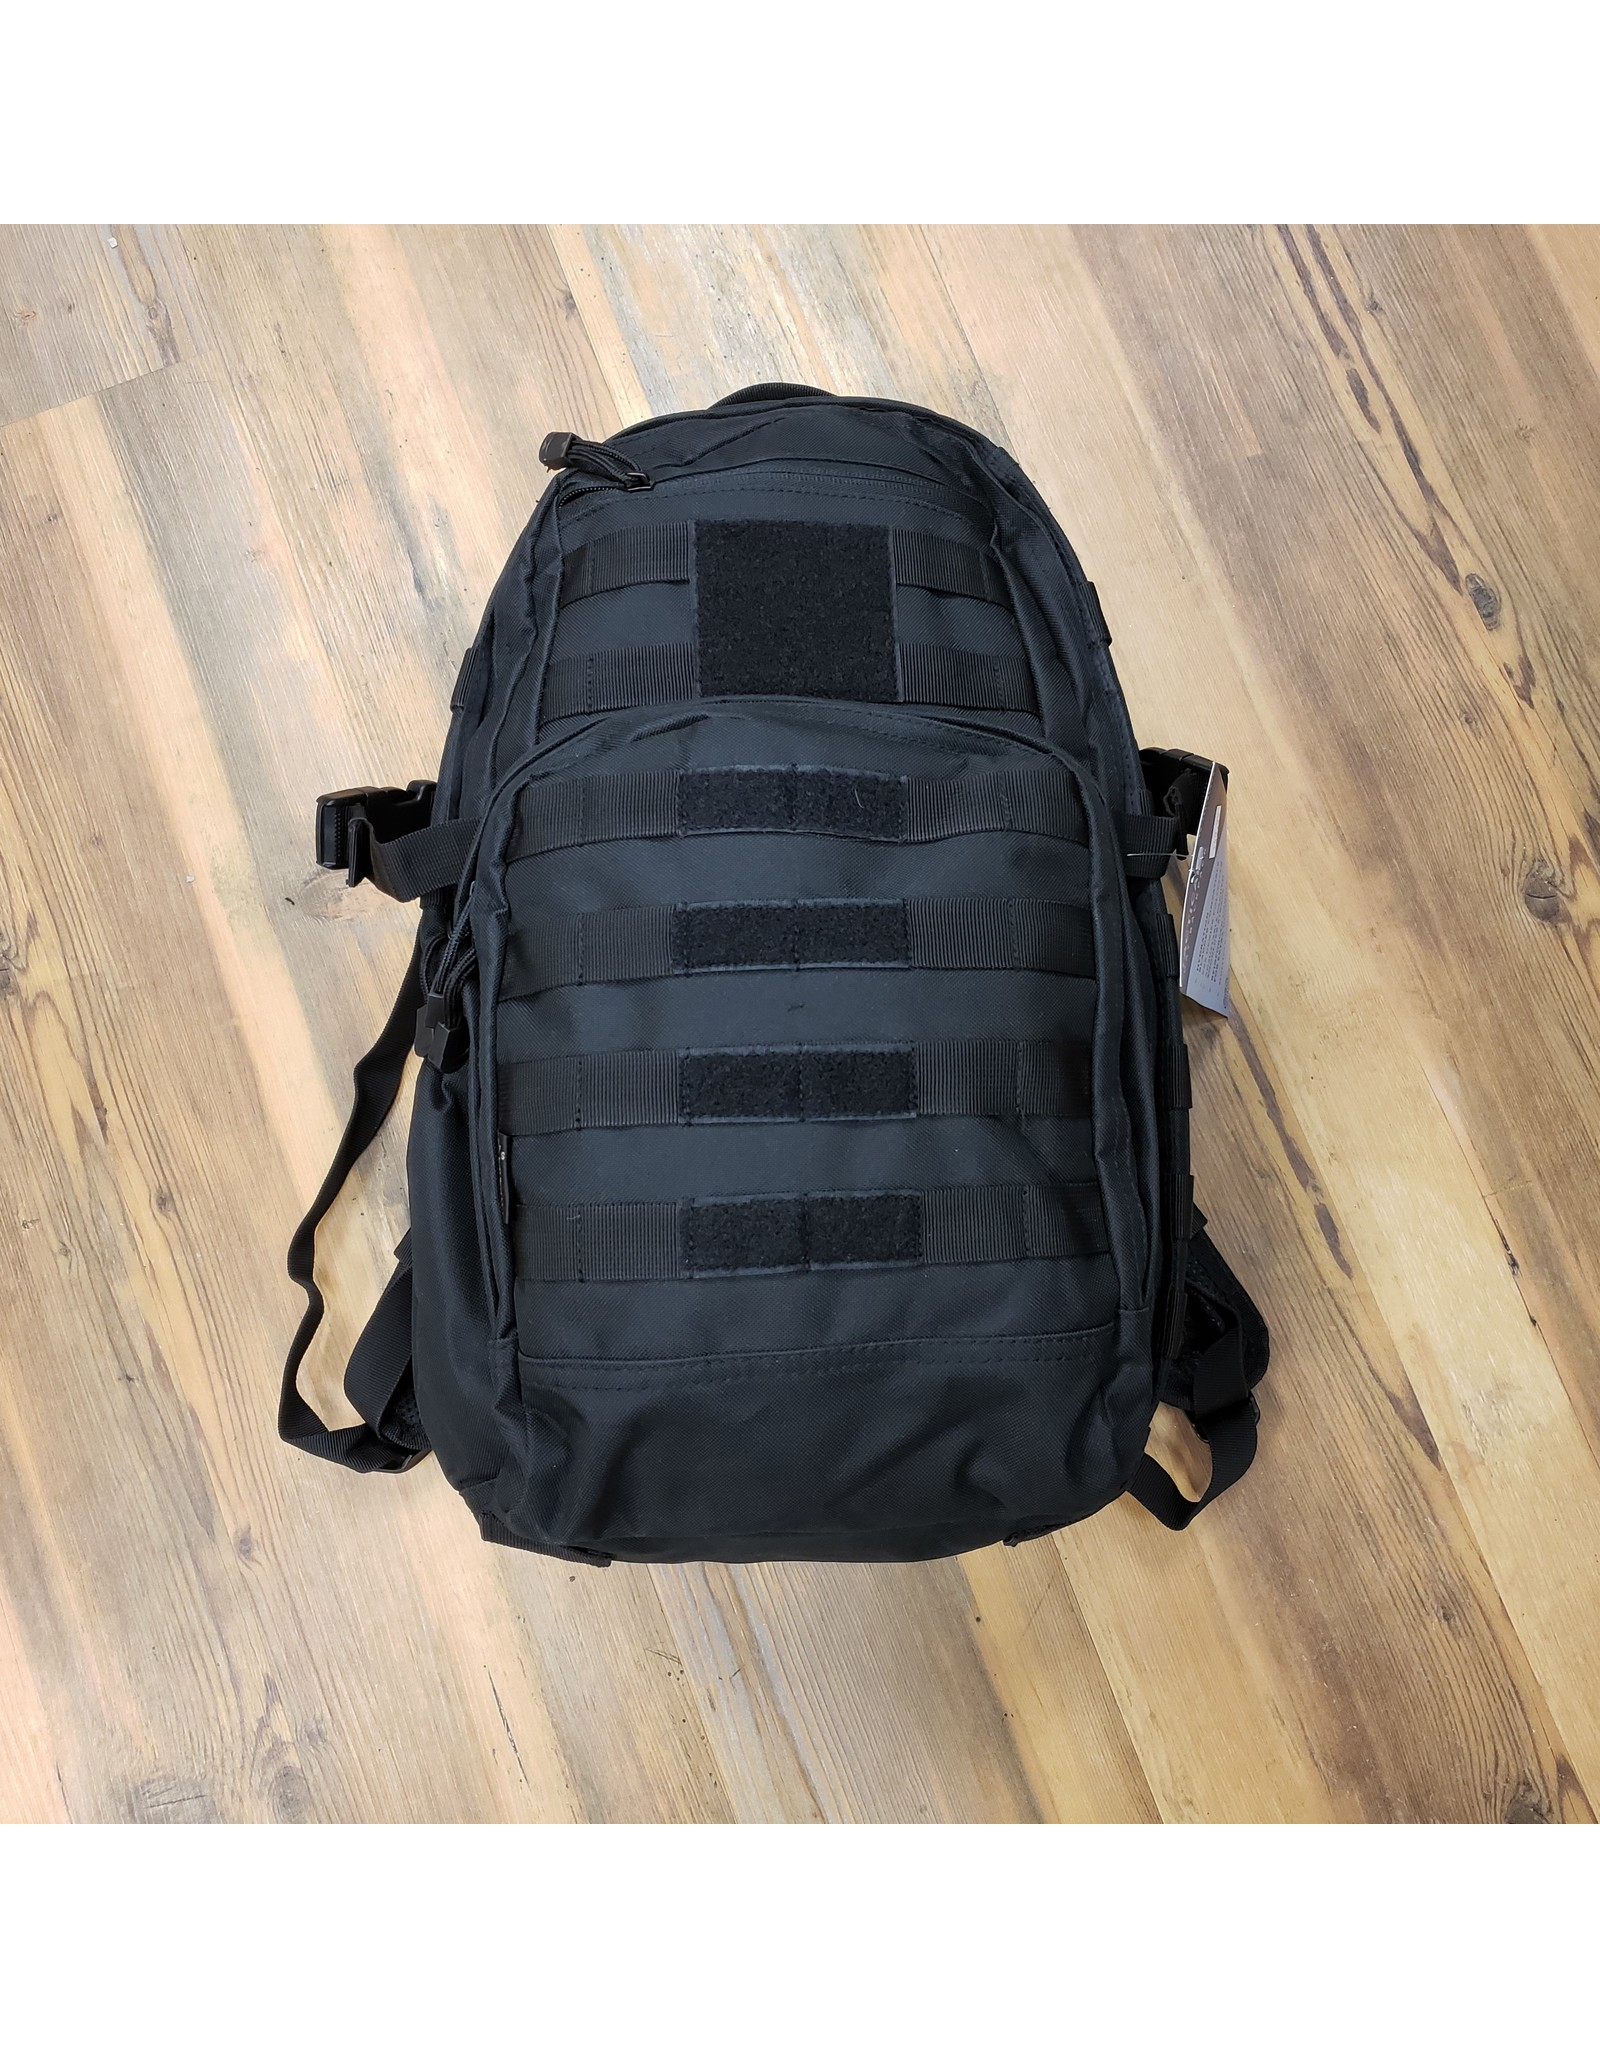 WORLD FAMOUS SPORTS WFS 35L TACTICAL BACKPACK - 92826